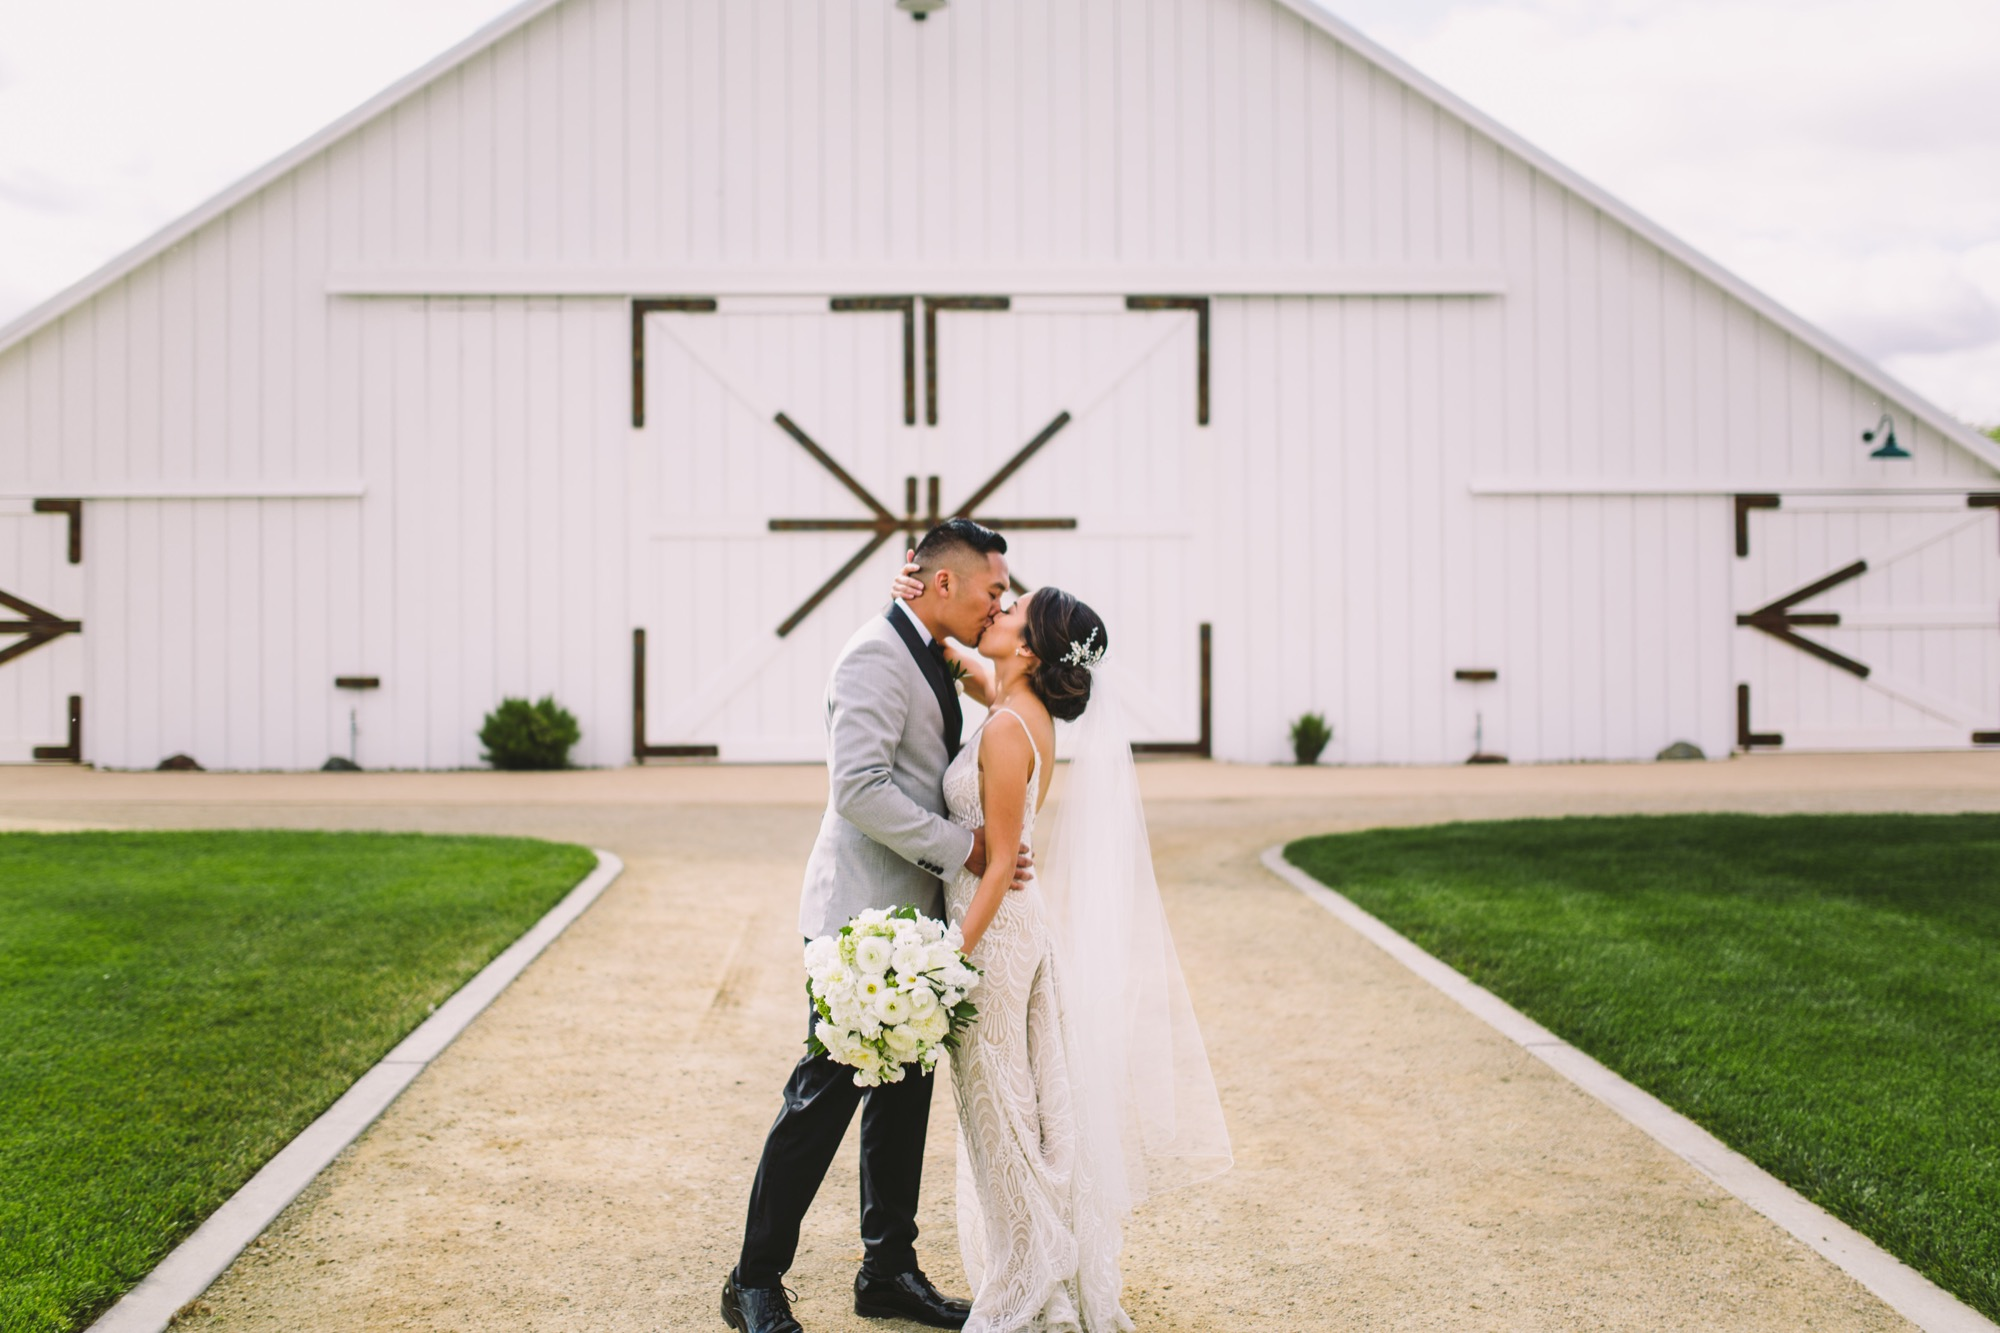 White Barn Wedding Arroyo Grande (3 of 3)-2.jpg